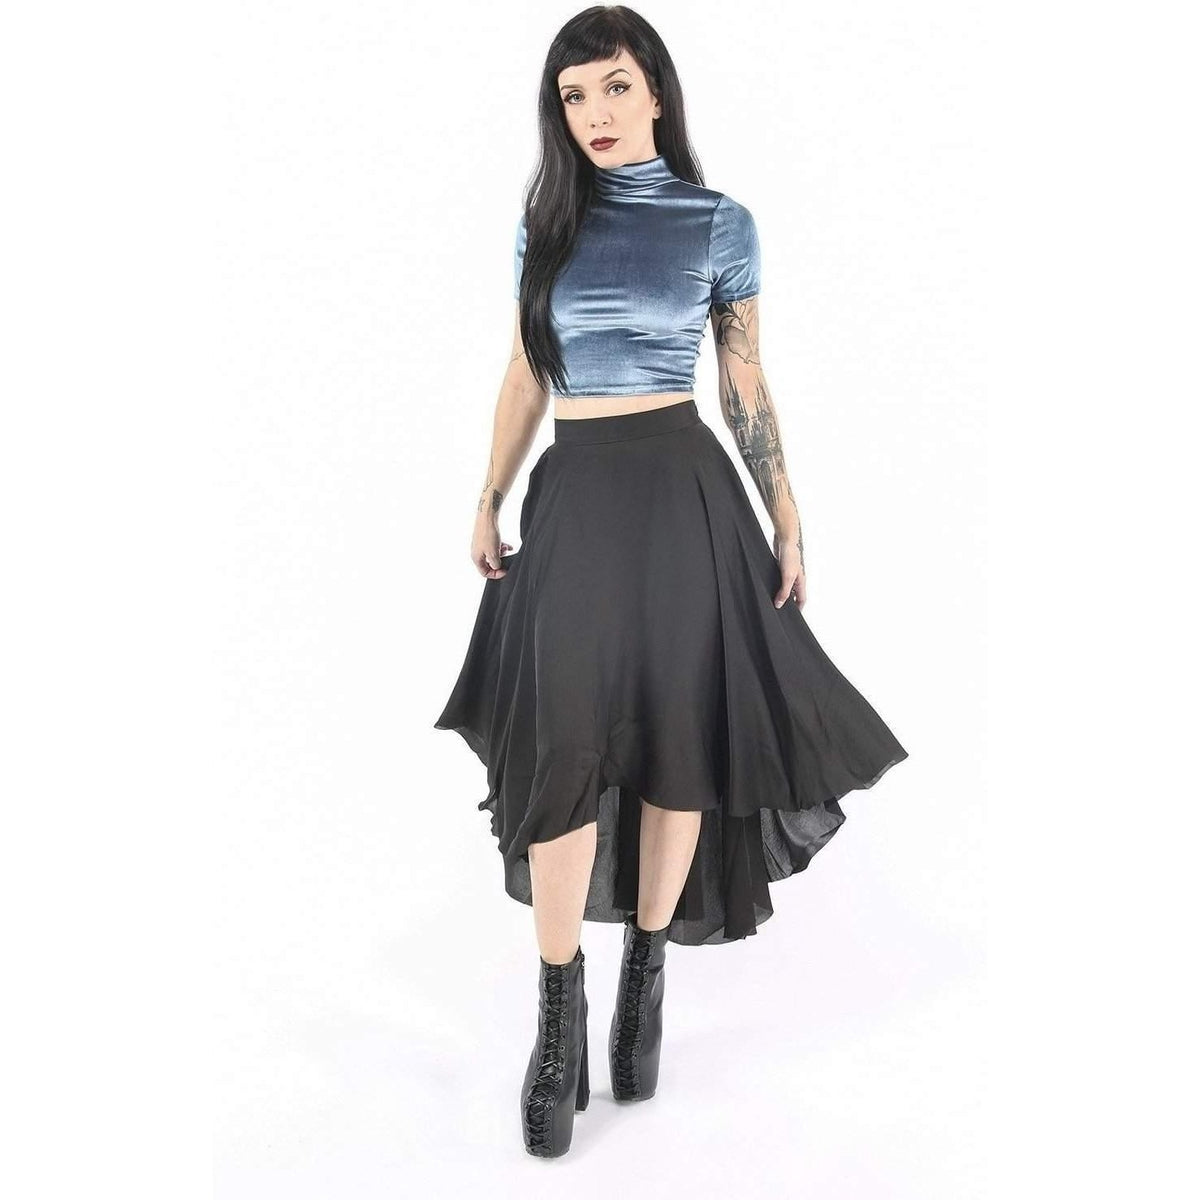 WIDOW FOUR HORSEMEN CROP TOP